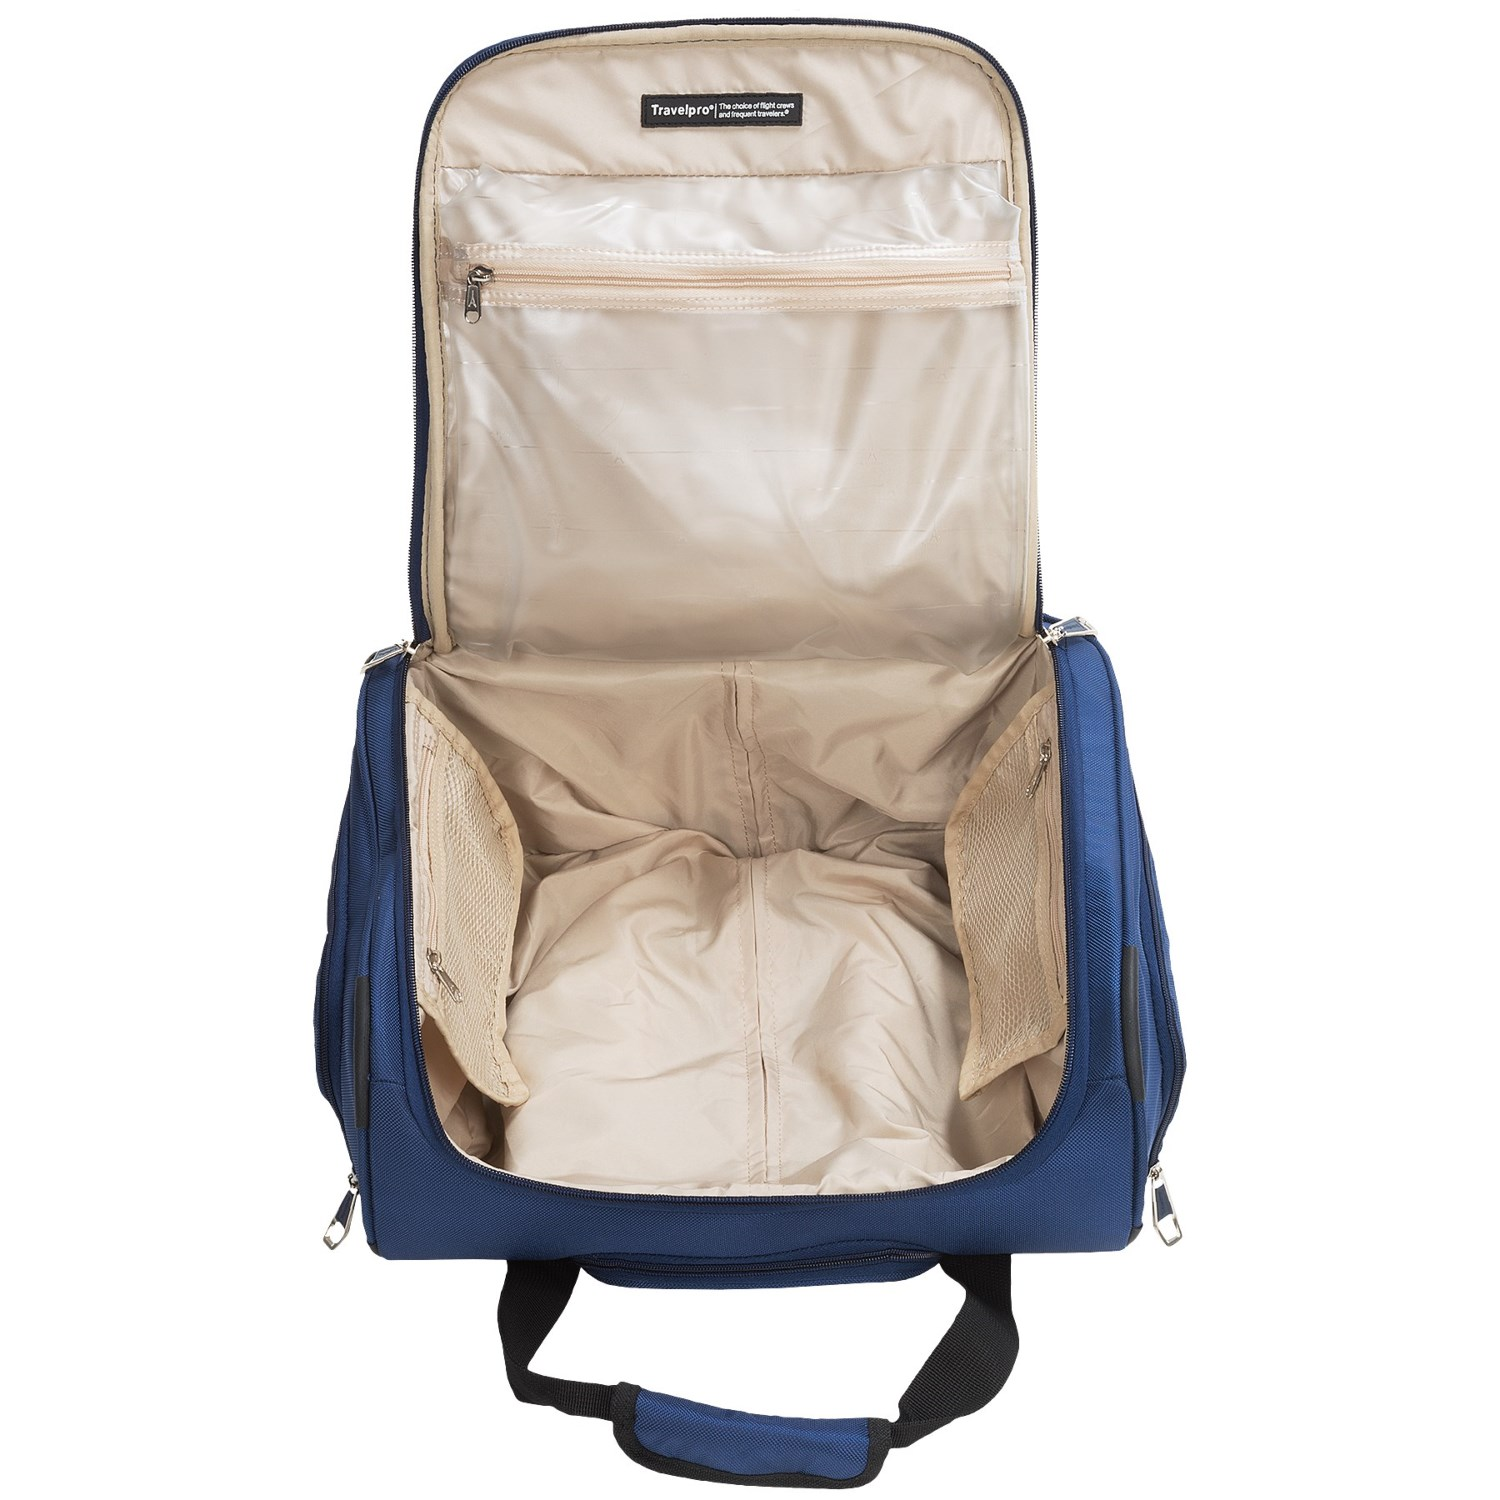 Travelpro Sapphire Elite Rolling Under Seat Bag 15